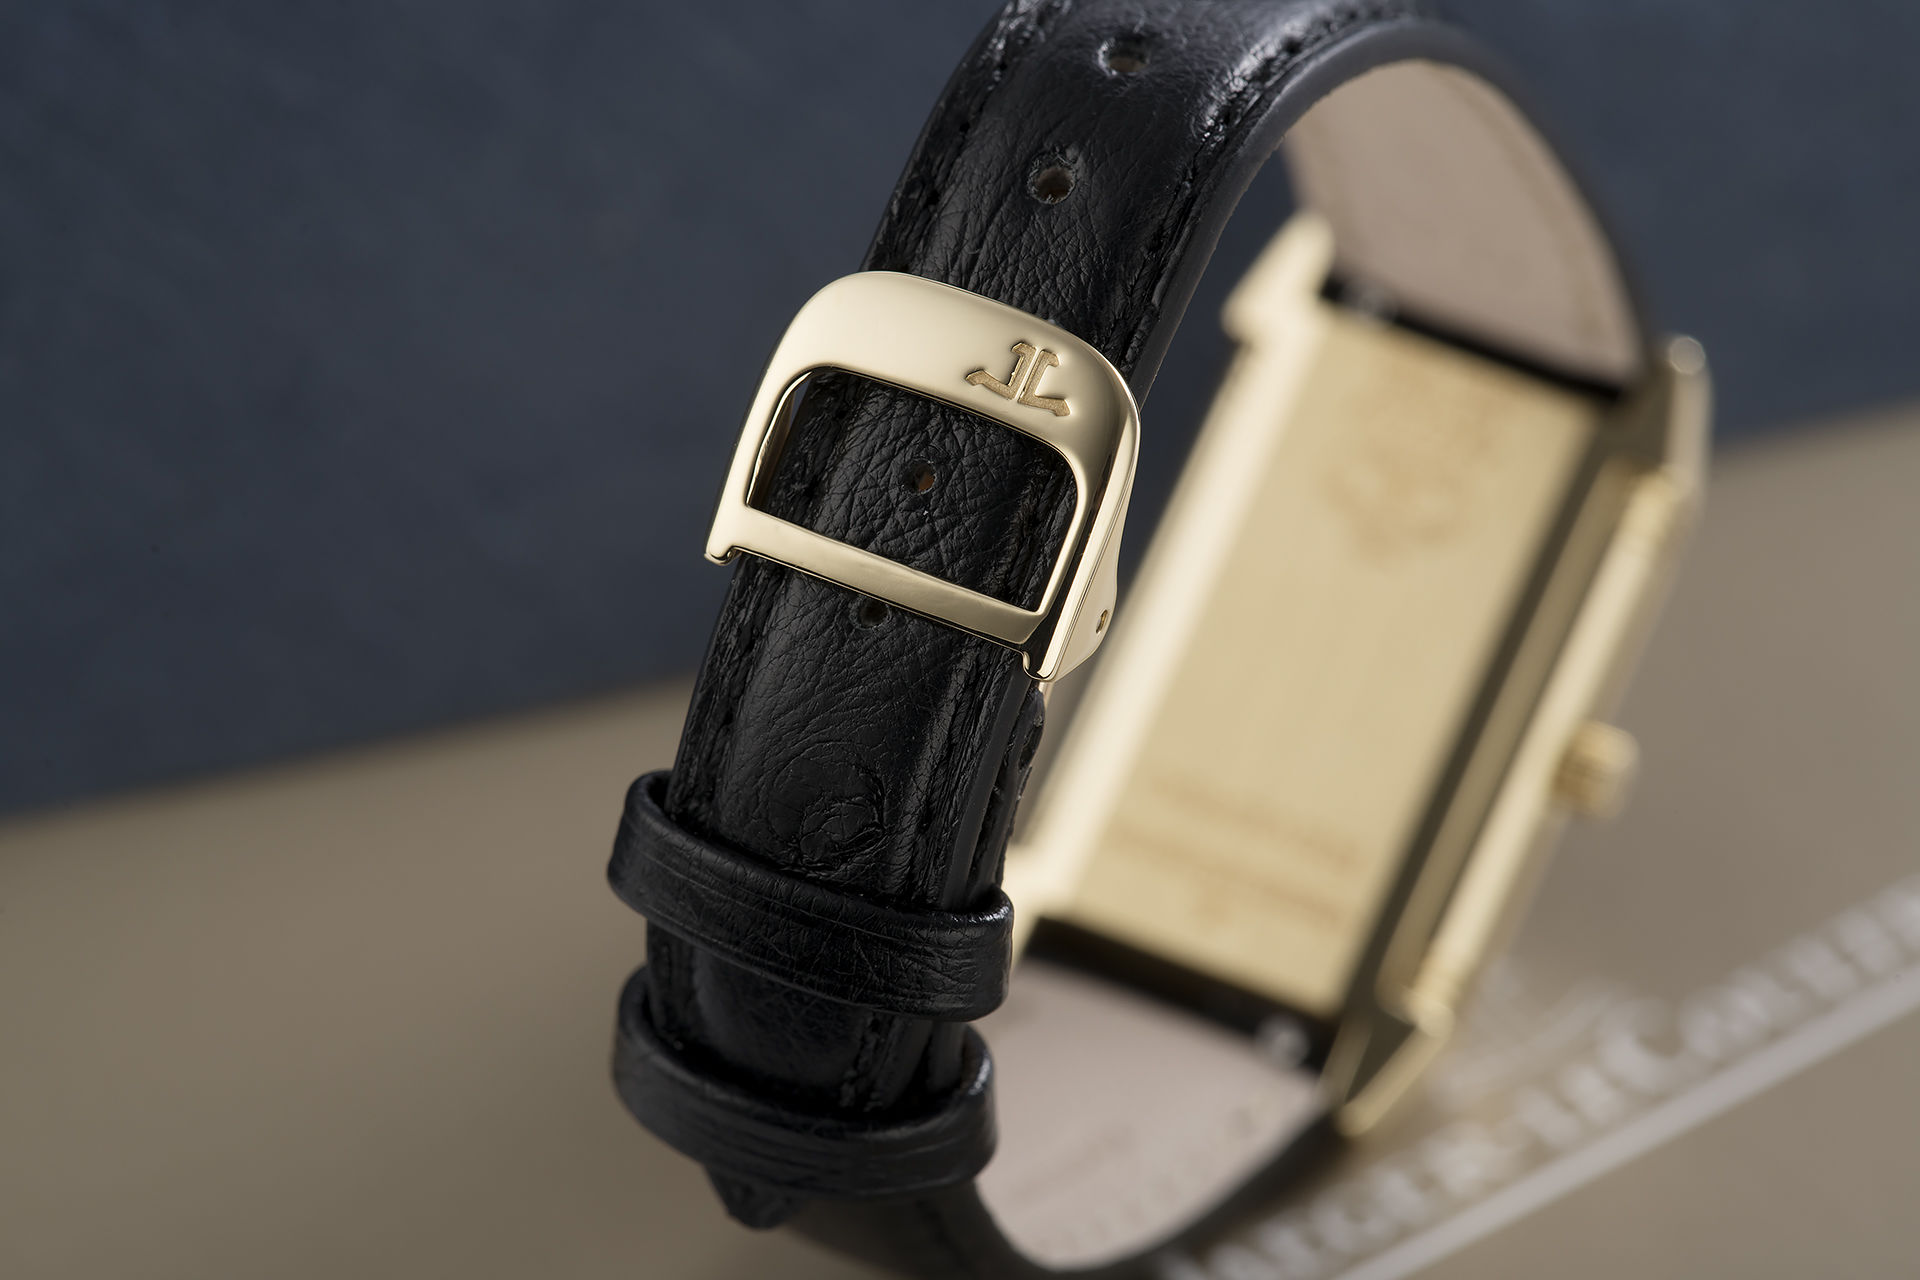 ref 260.1.08 | Yellow Gold | Jaeger-leCoultre Reverso